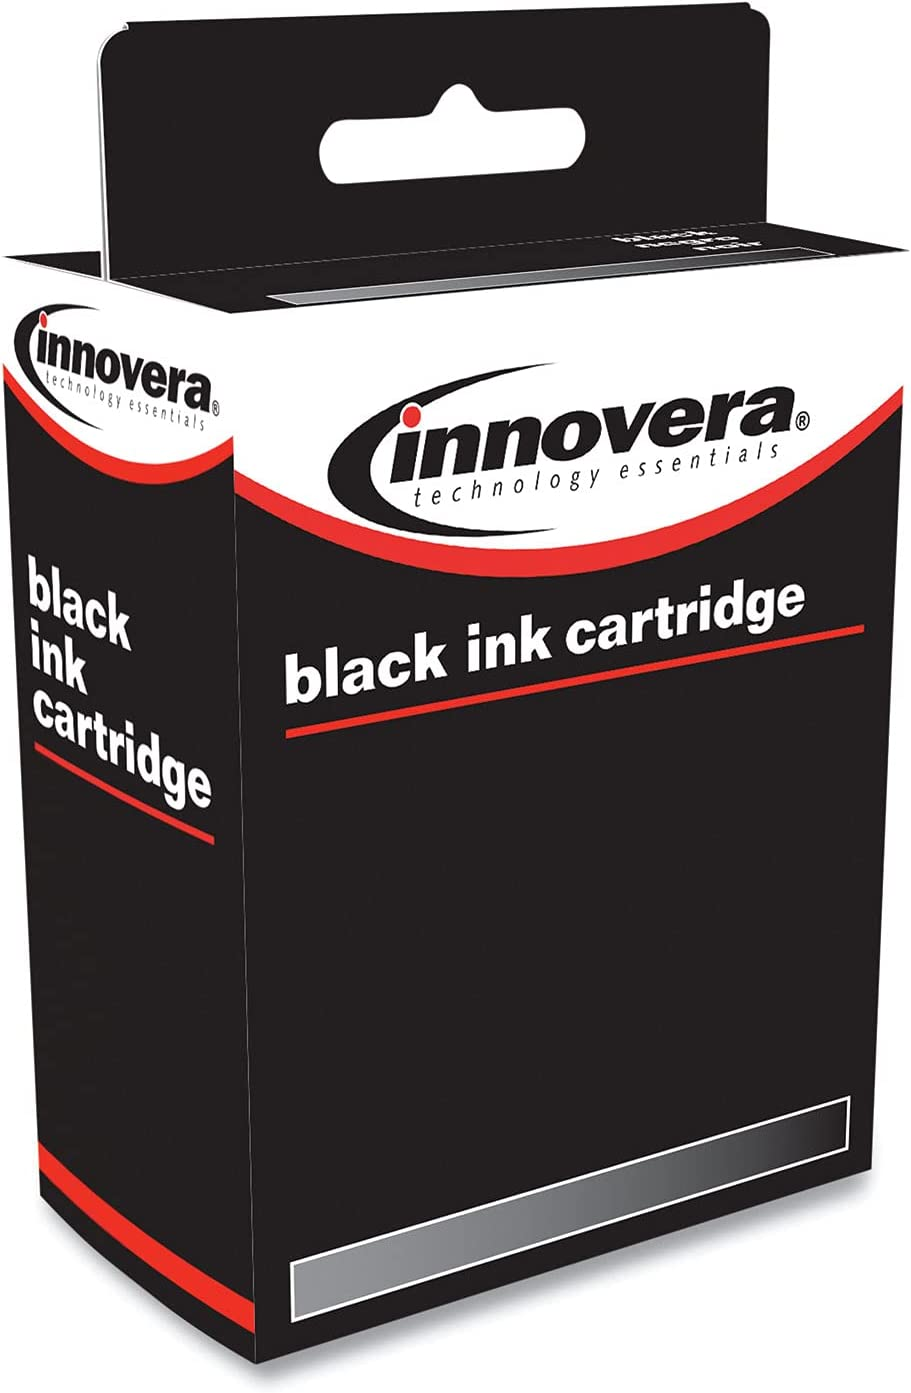 Innovera PC201 Remanufactured PC201 Thermal Transfer, 450 Page-Yield, Black Toner